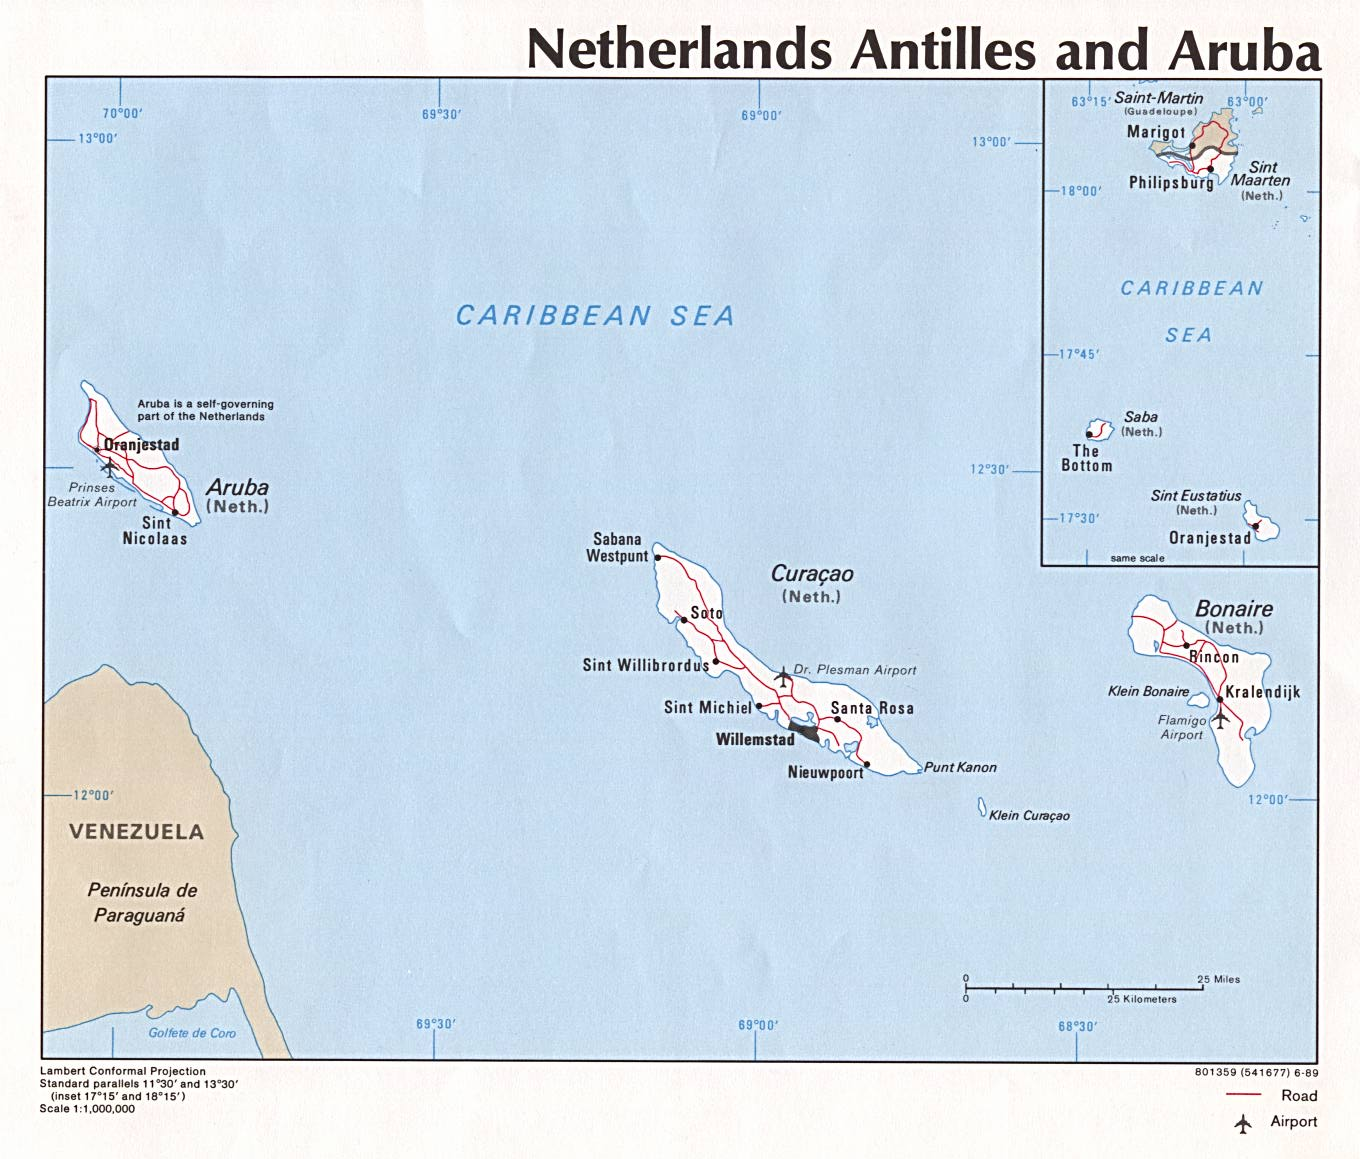 the little noticed dissolution of the netherlands antilles